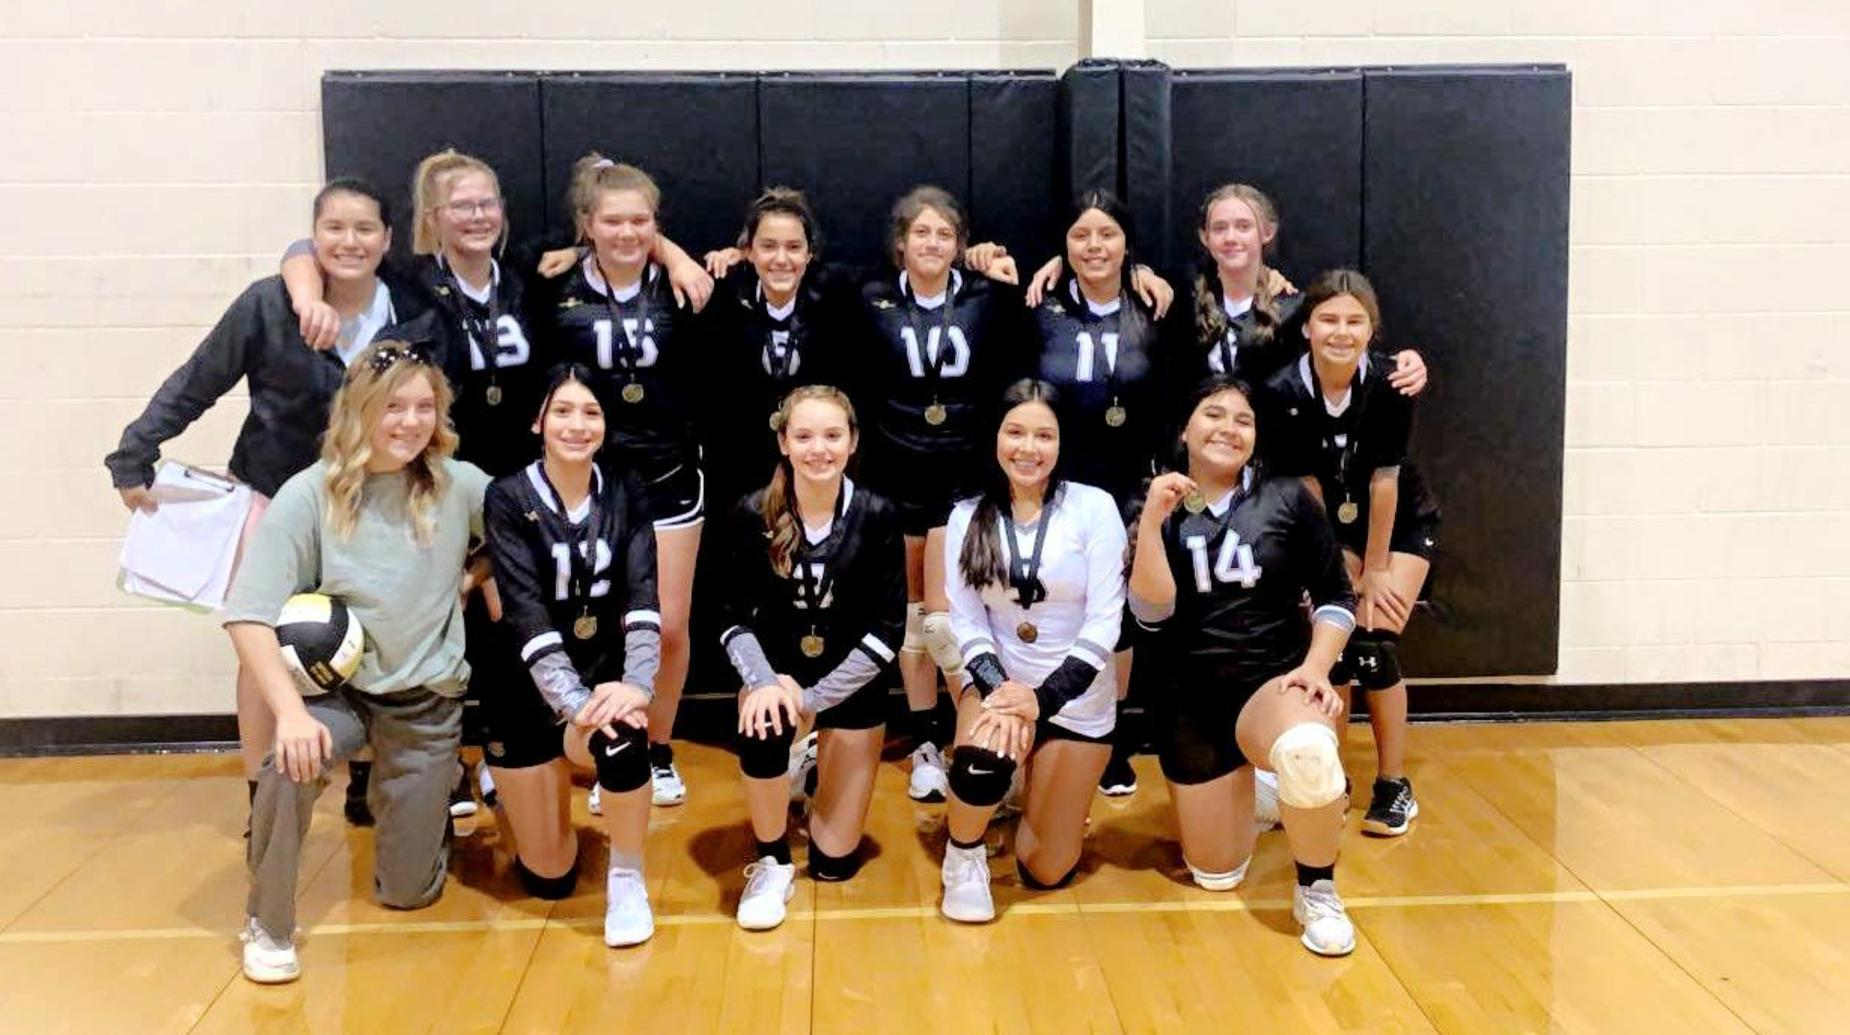 SJHS Volleyball Champs